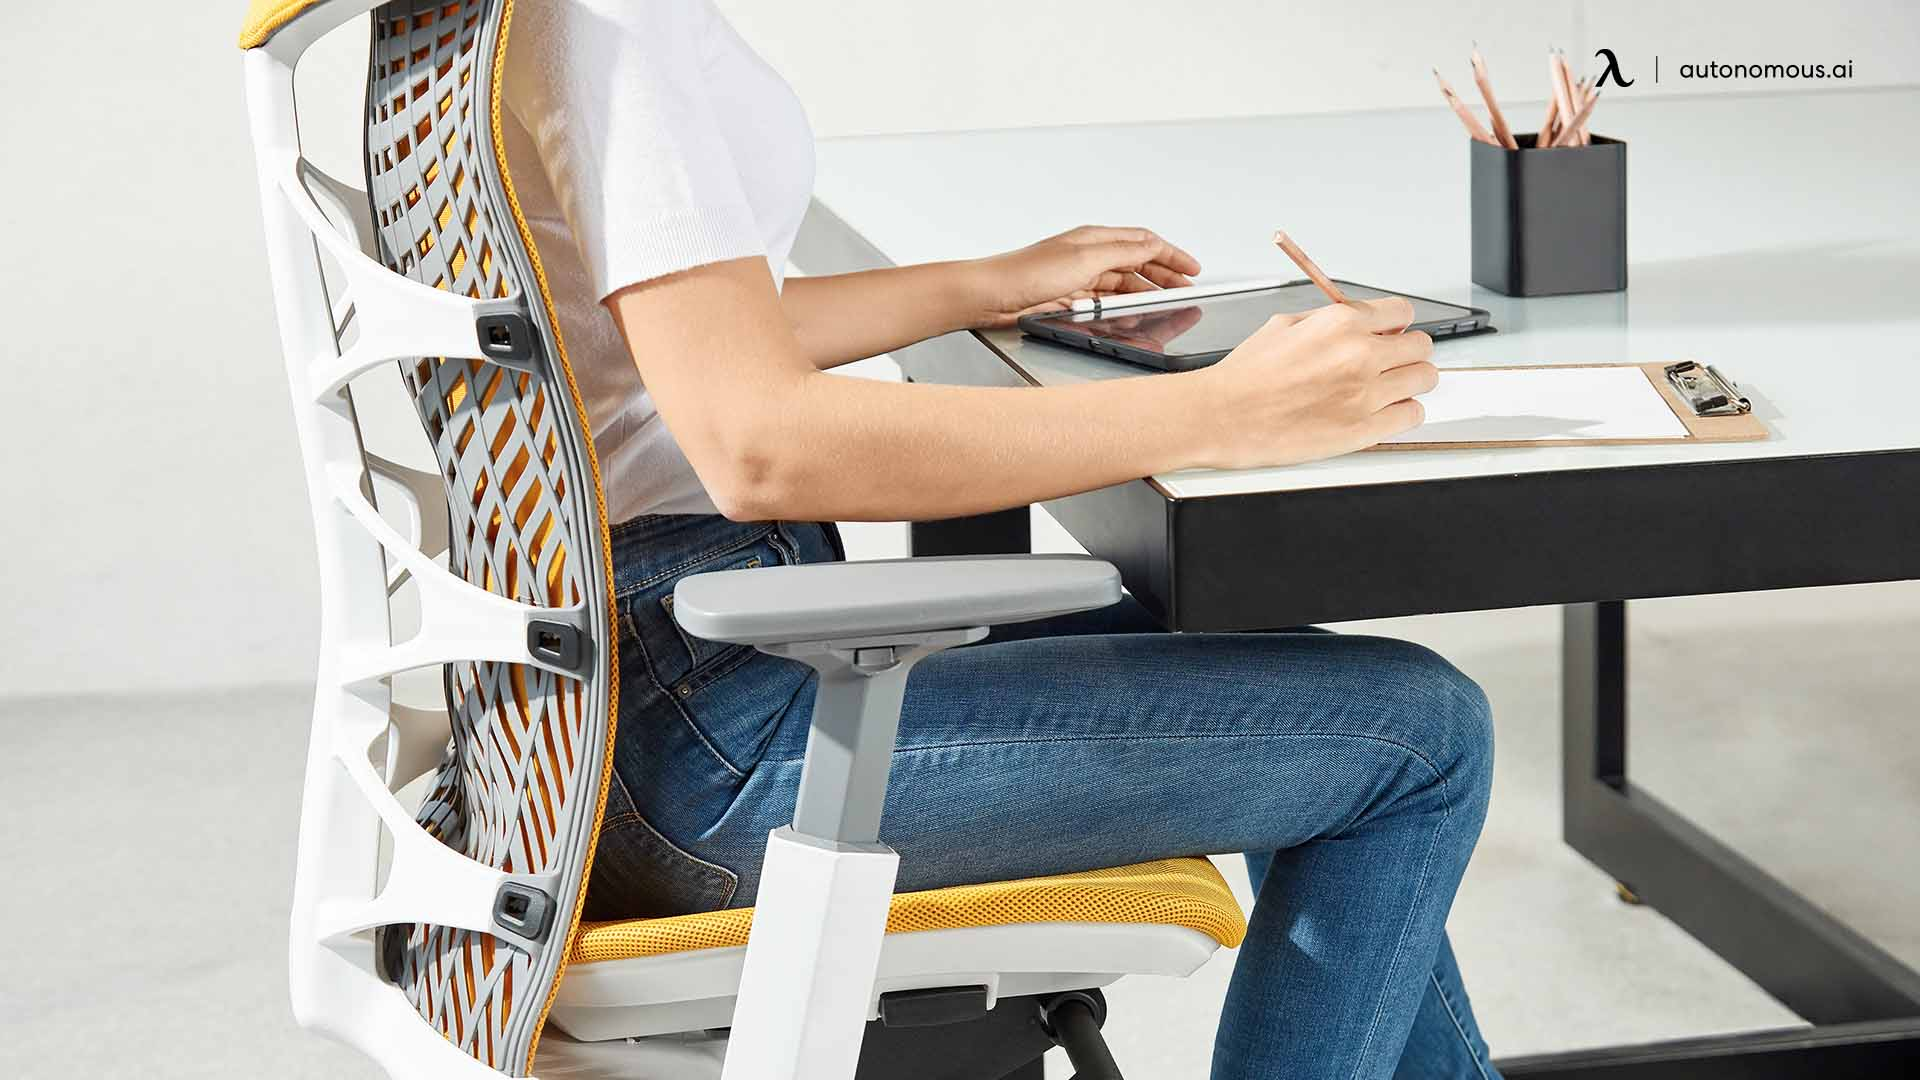 Sit as close to the desk as you comfortably can